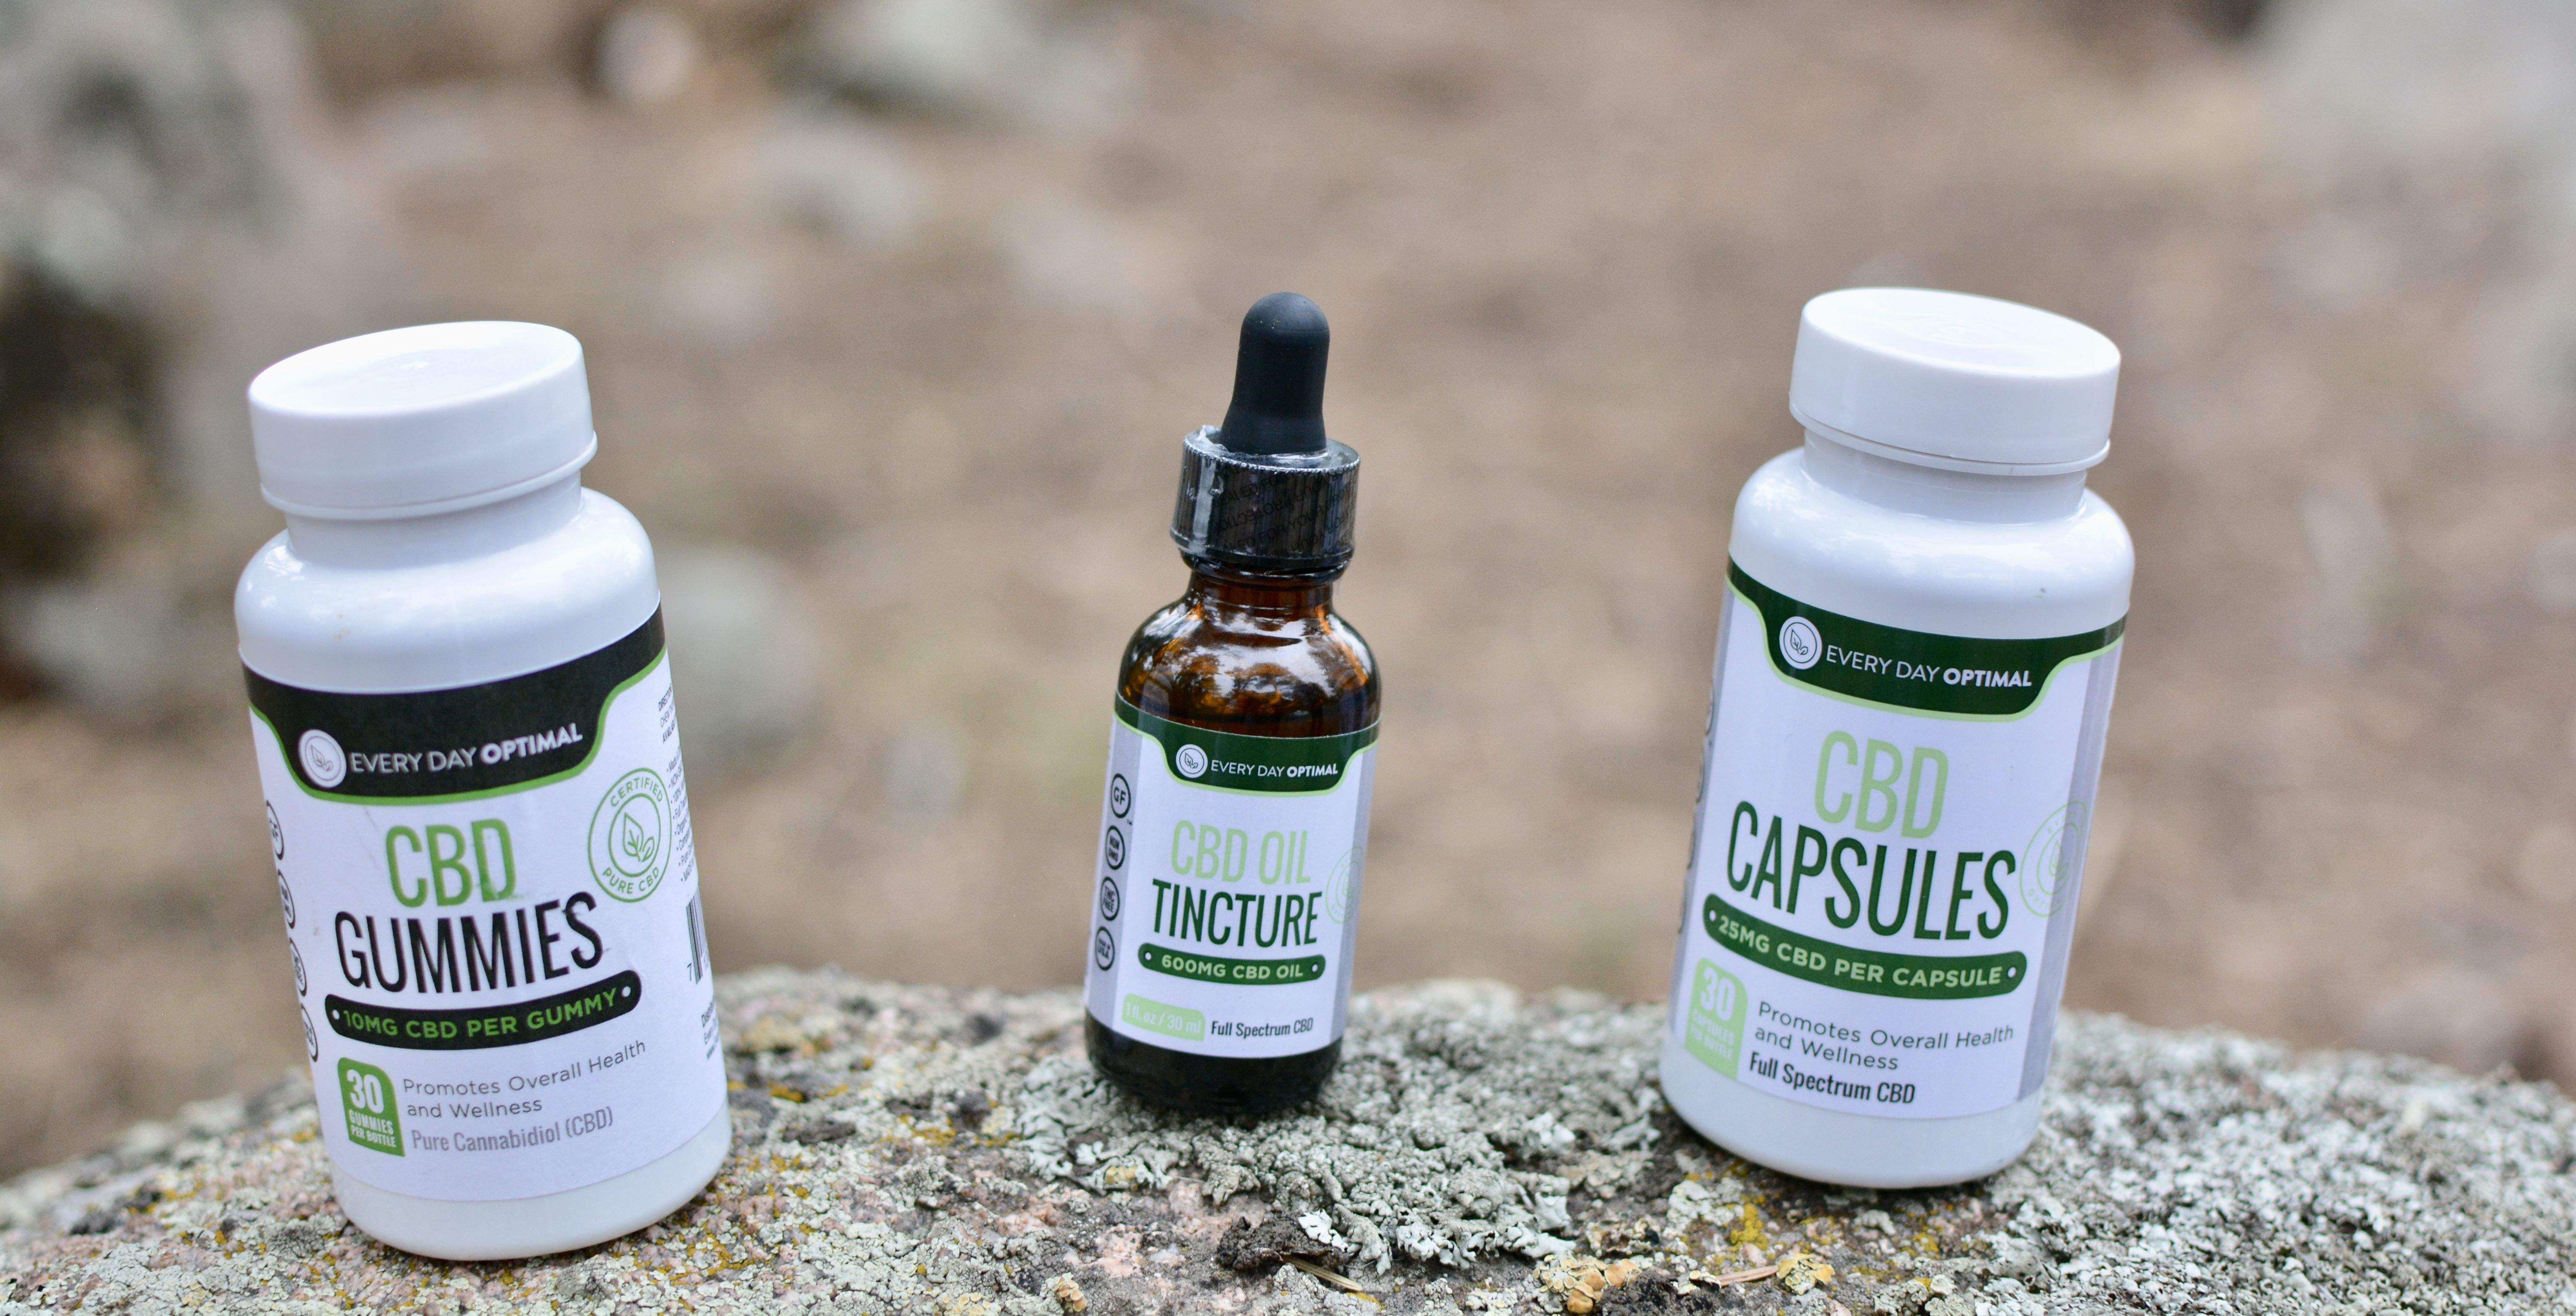 Everyday optimal cbd products for health wellness